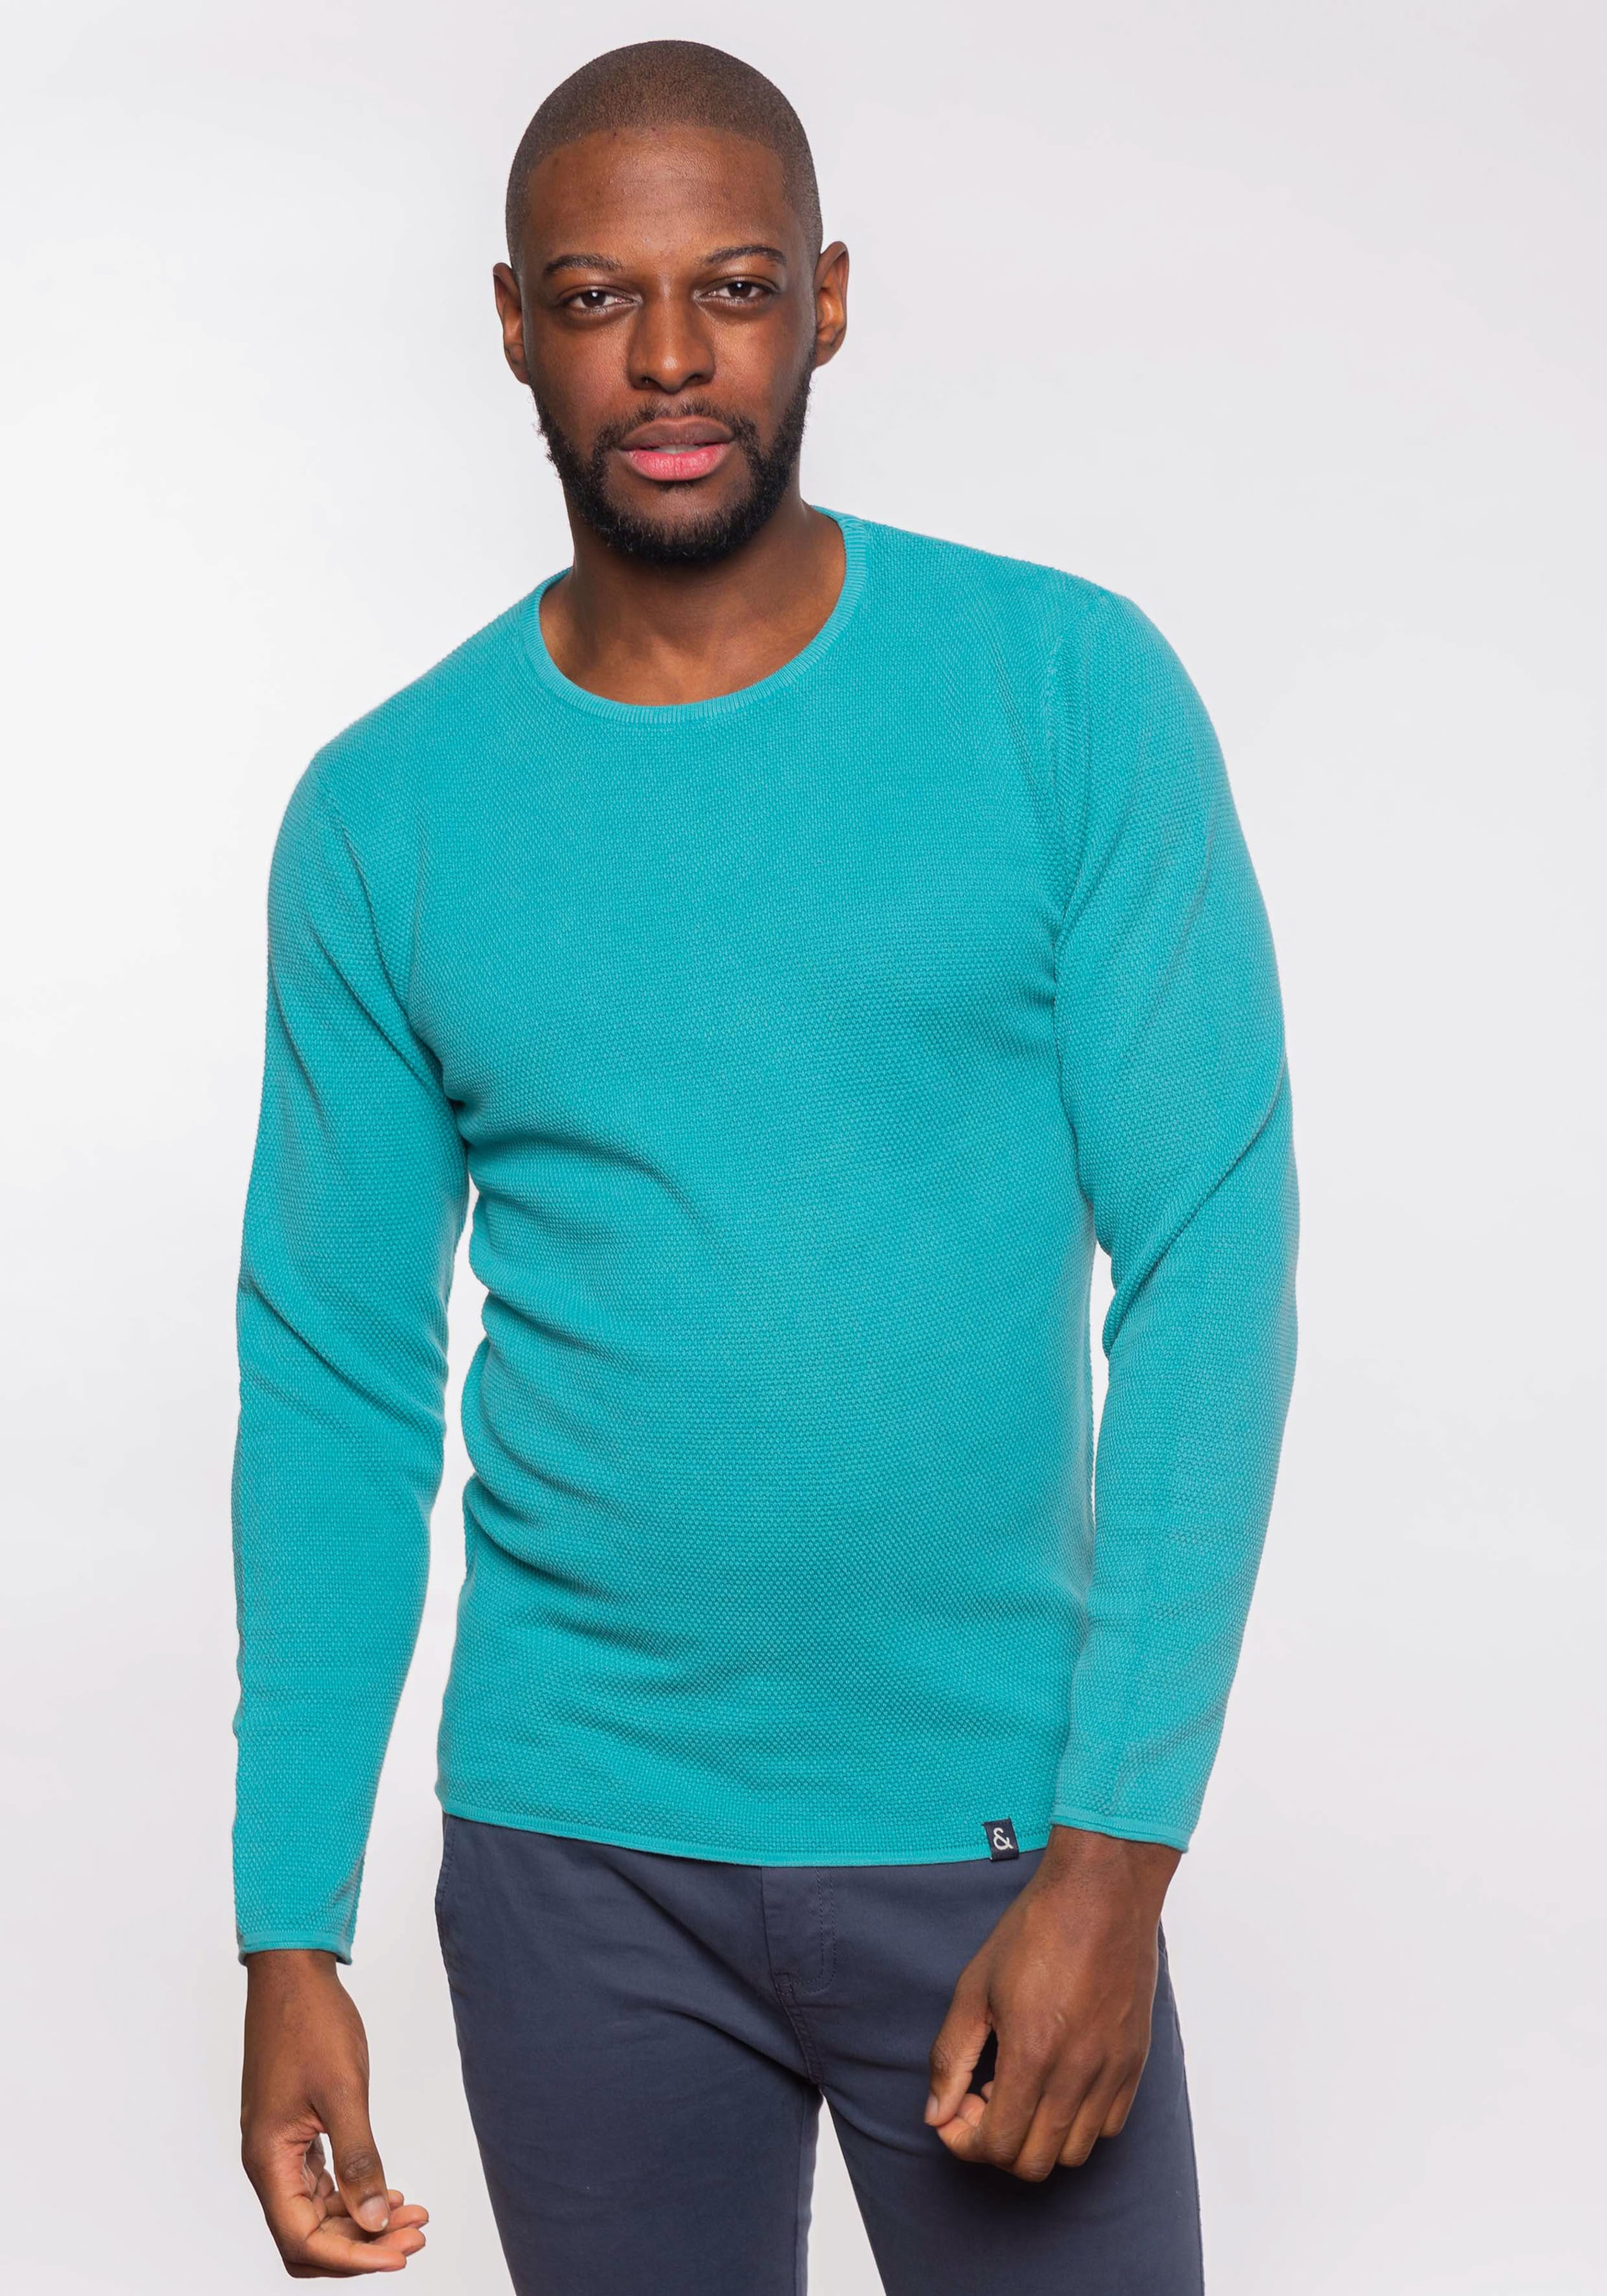 'noah' Pullover In Türkis Sons Coloursamp; FJcTl1K